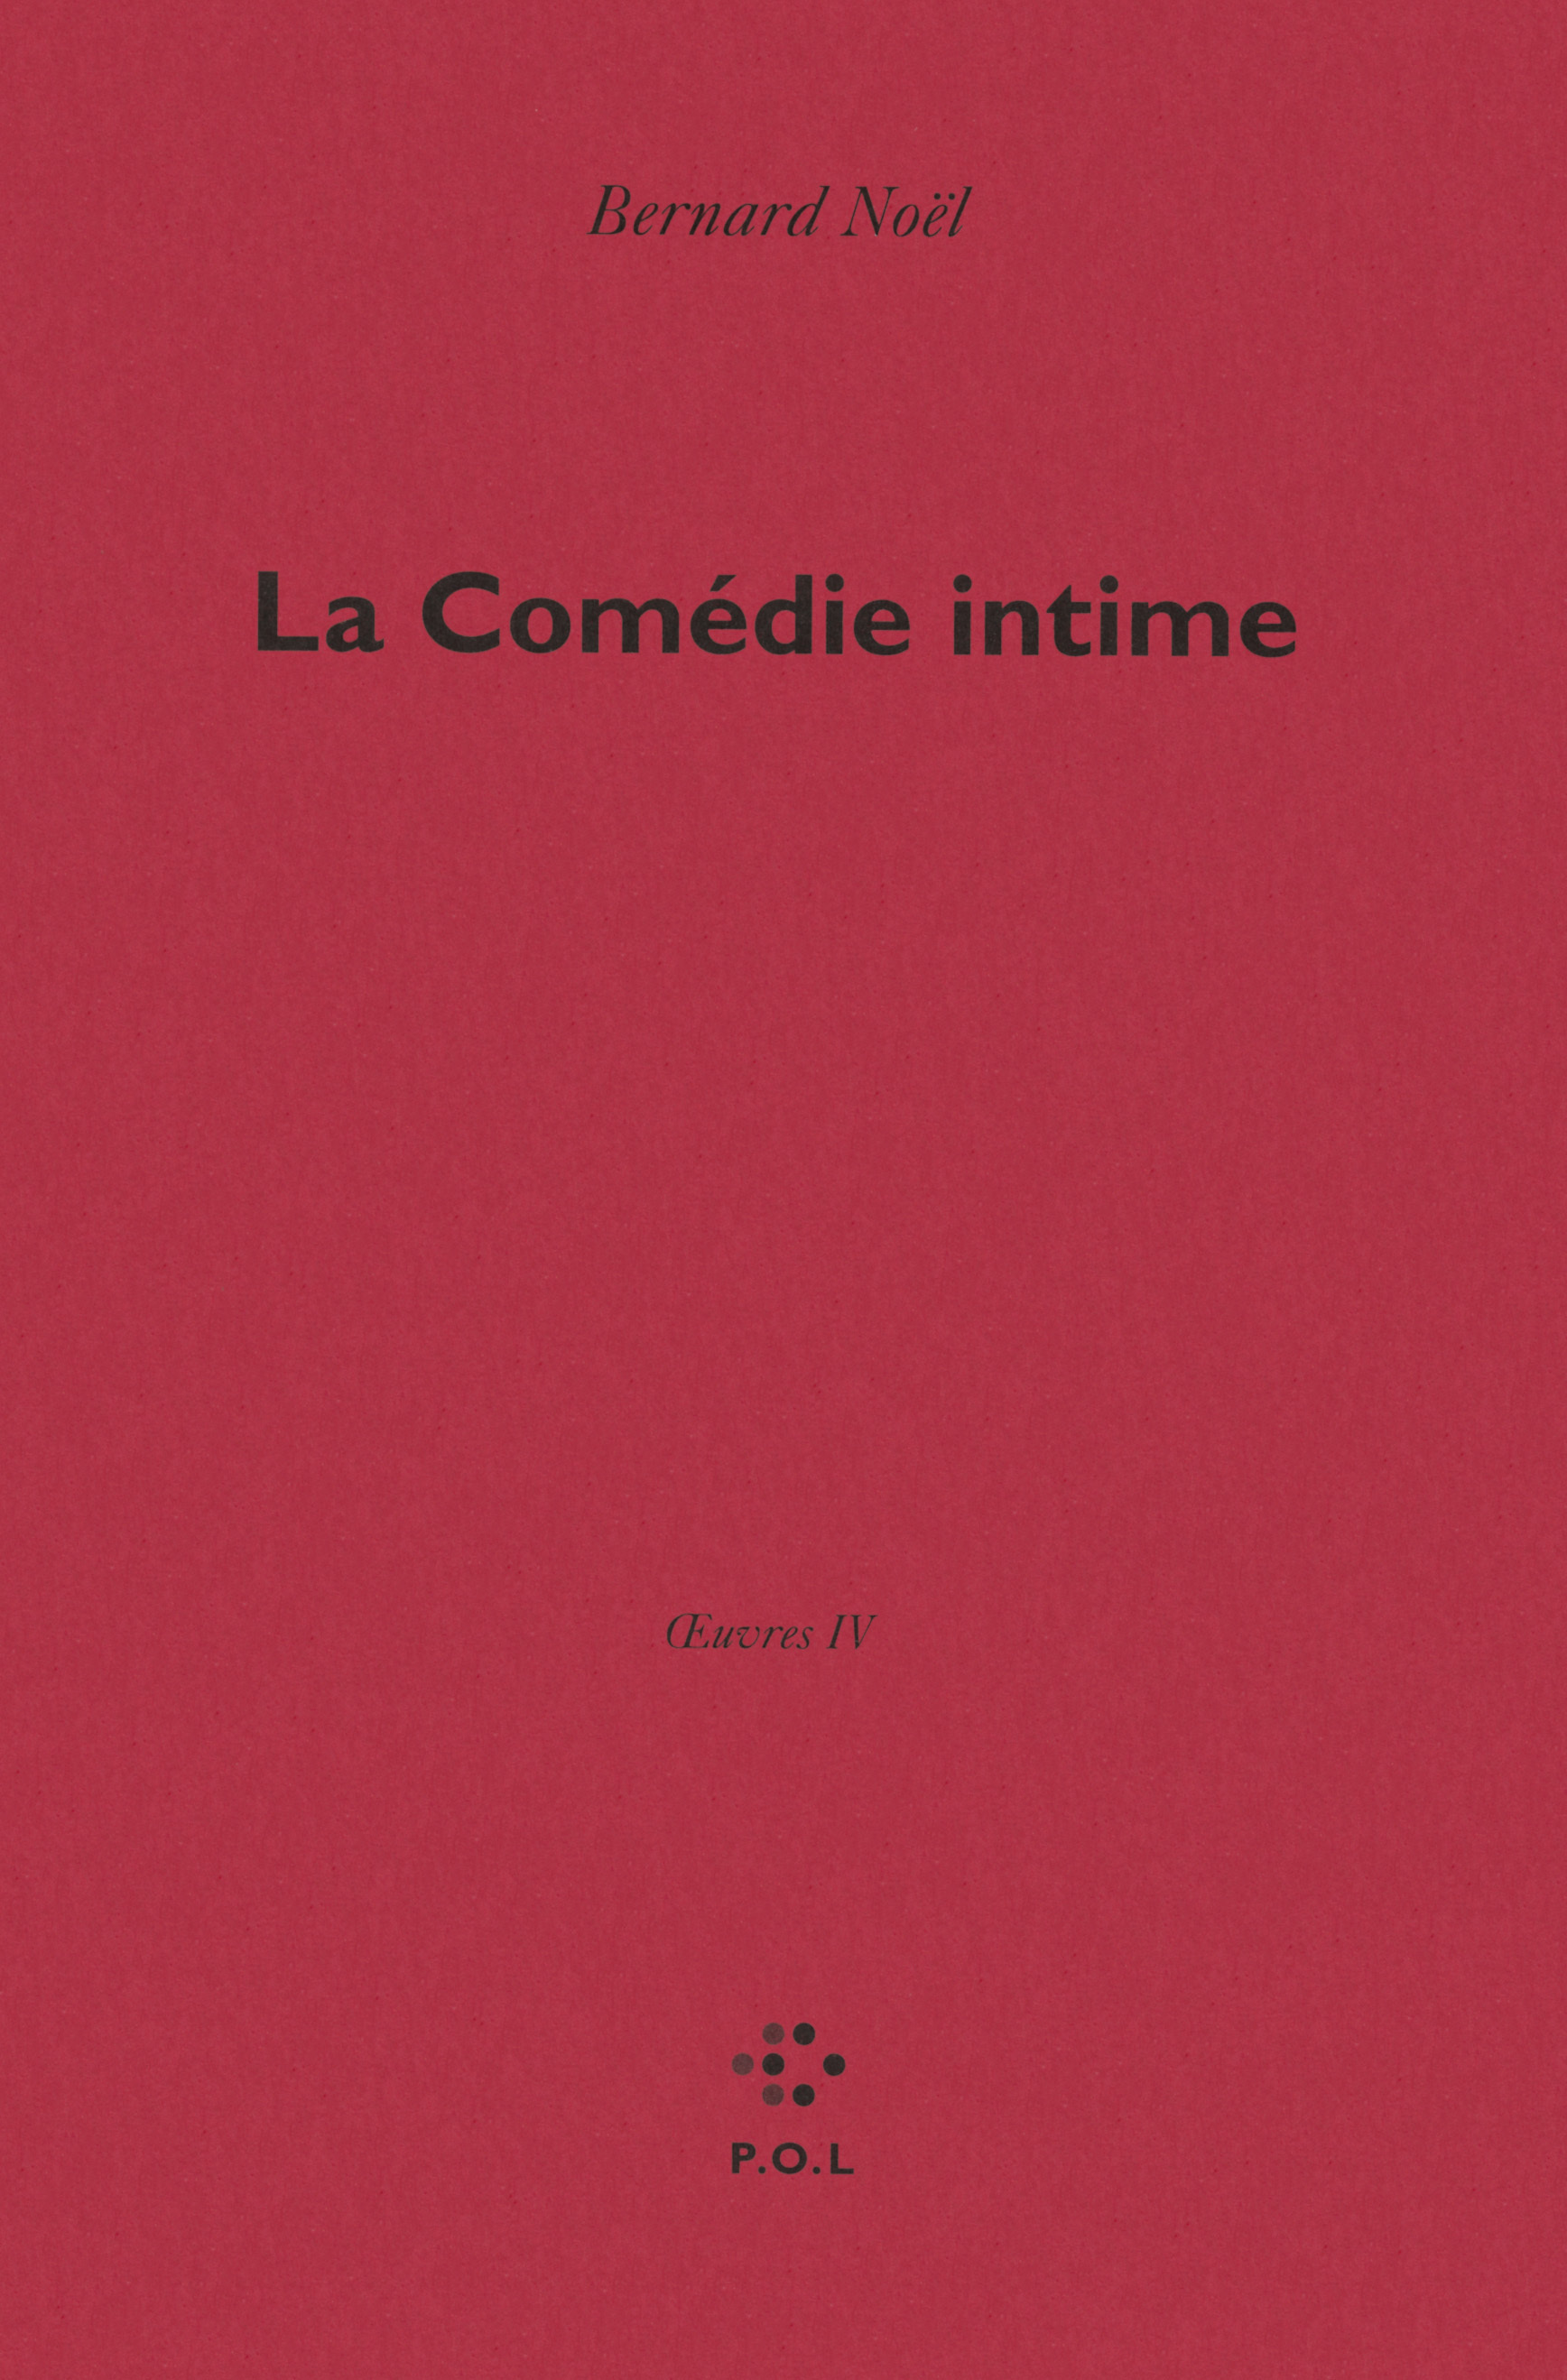 OEUVRES, IV : LA COMEDIE INTIME - OEUVRES IV